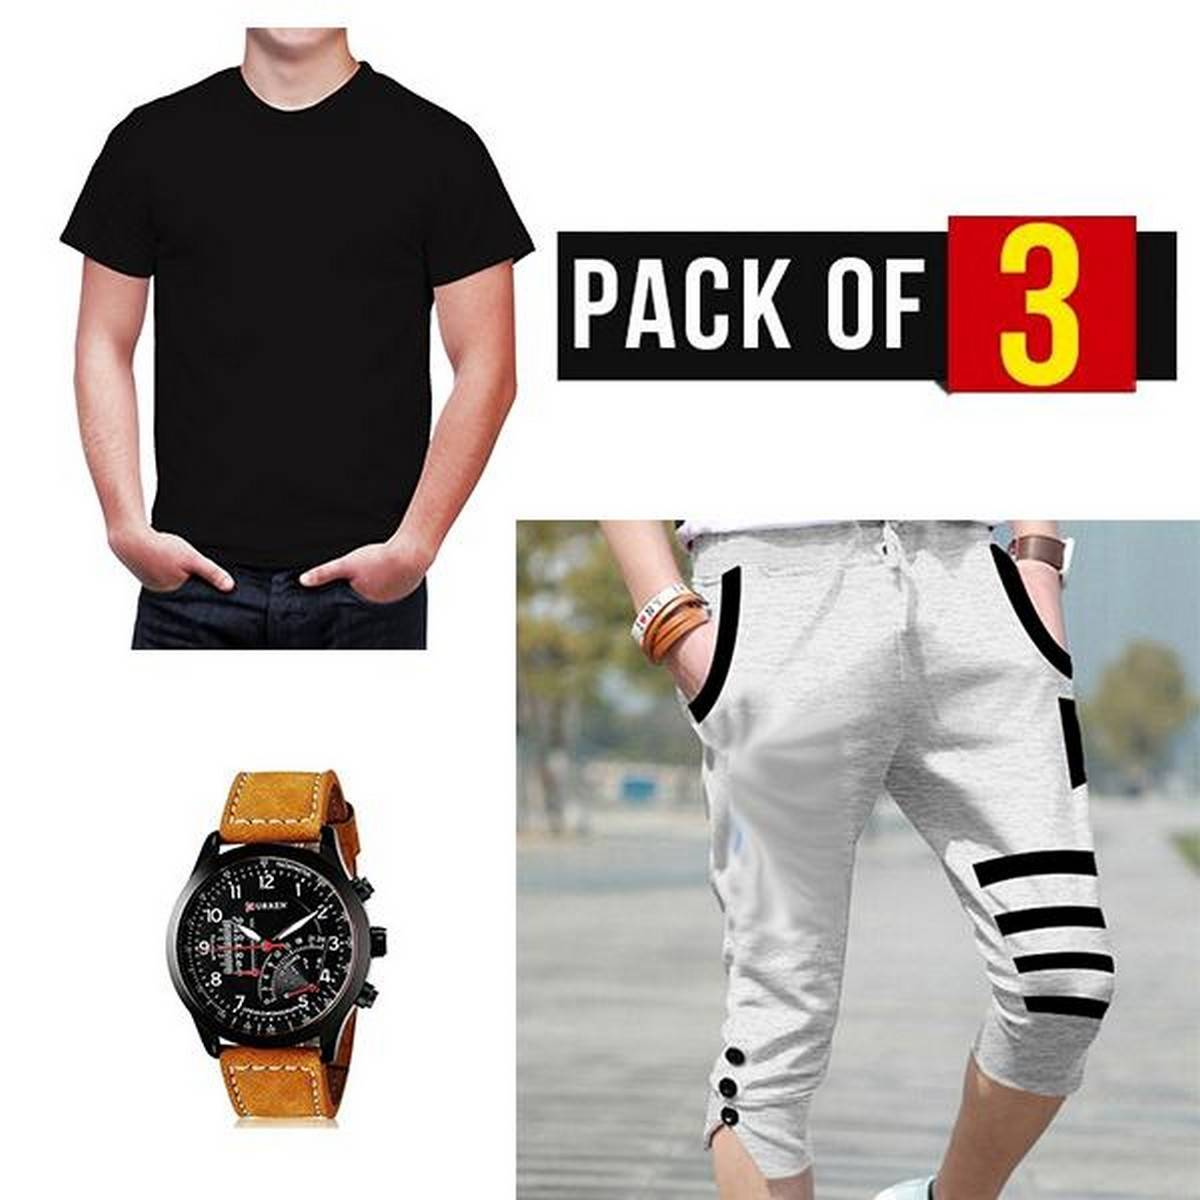 Pack of 3 Shorts T Shirt and Watch For Men